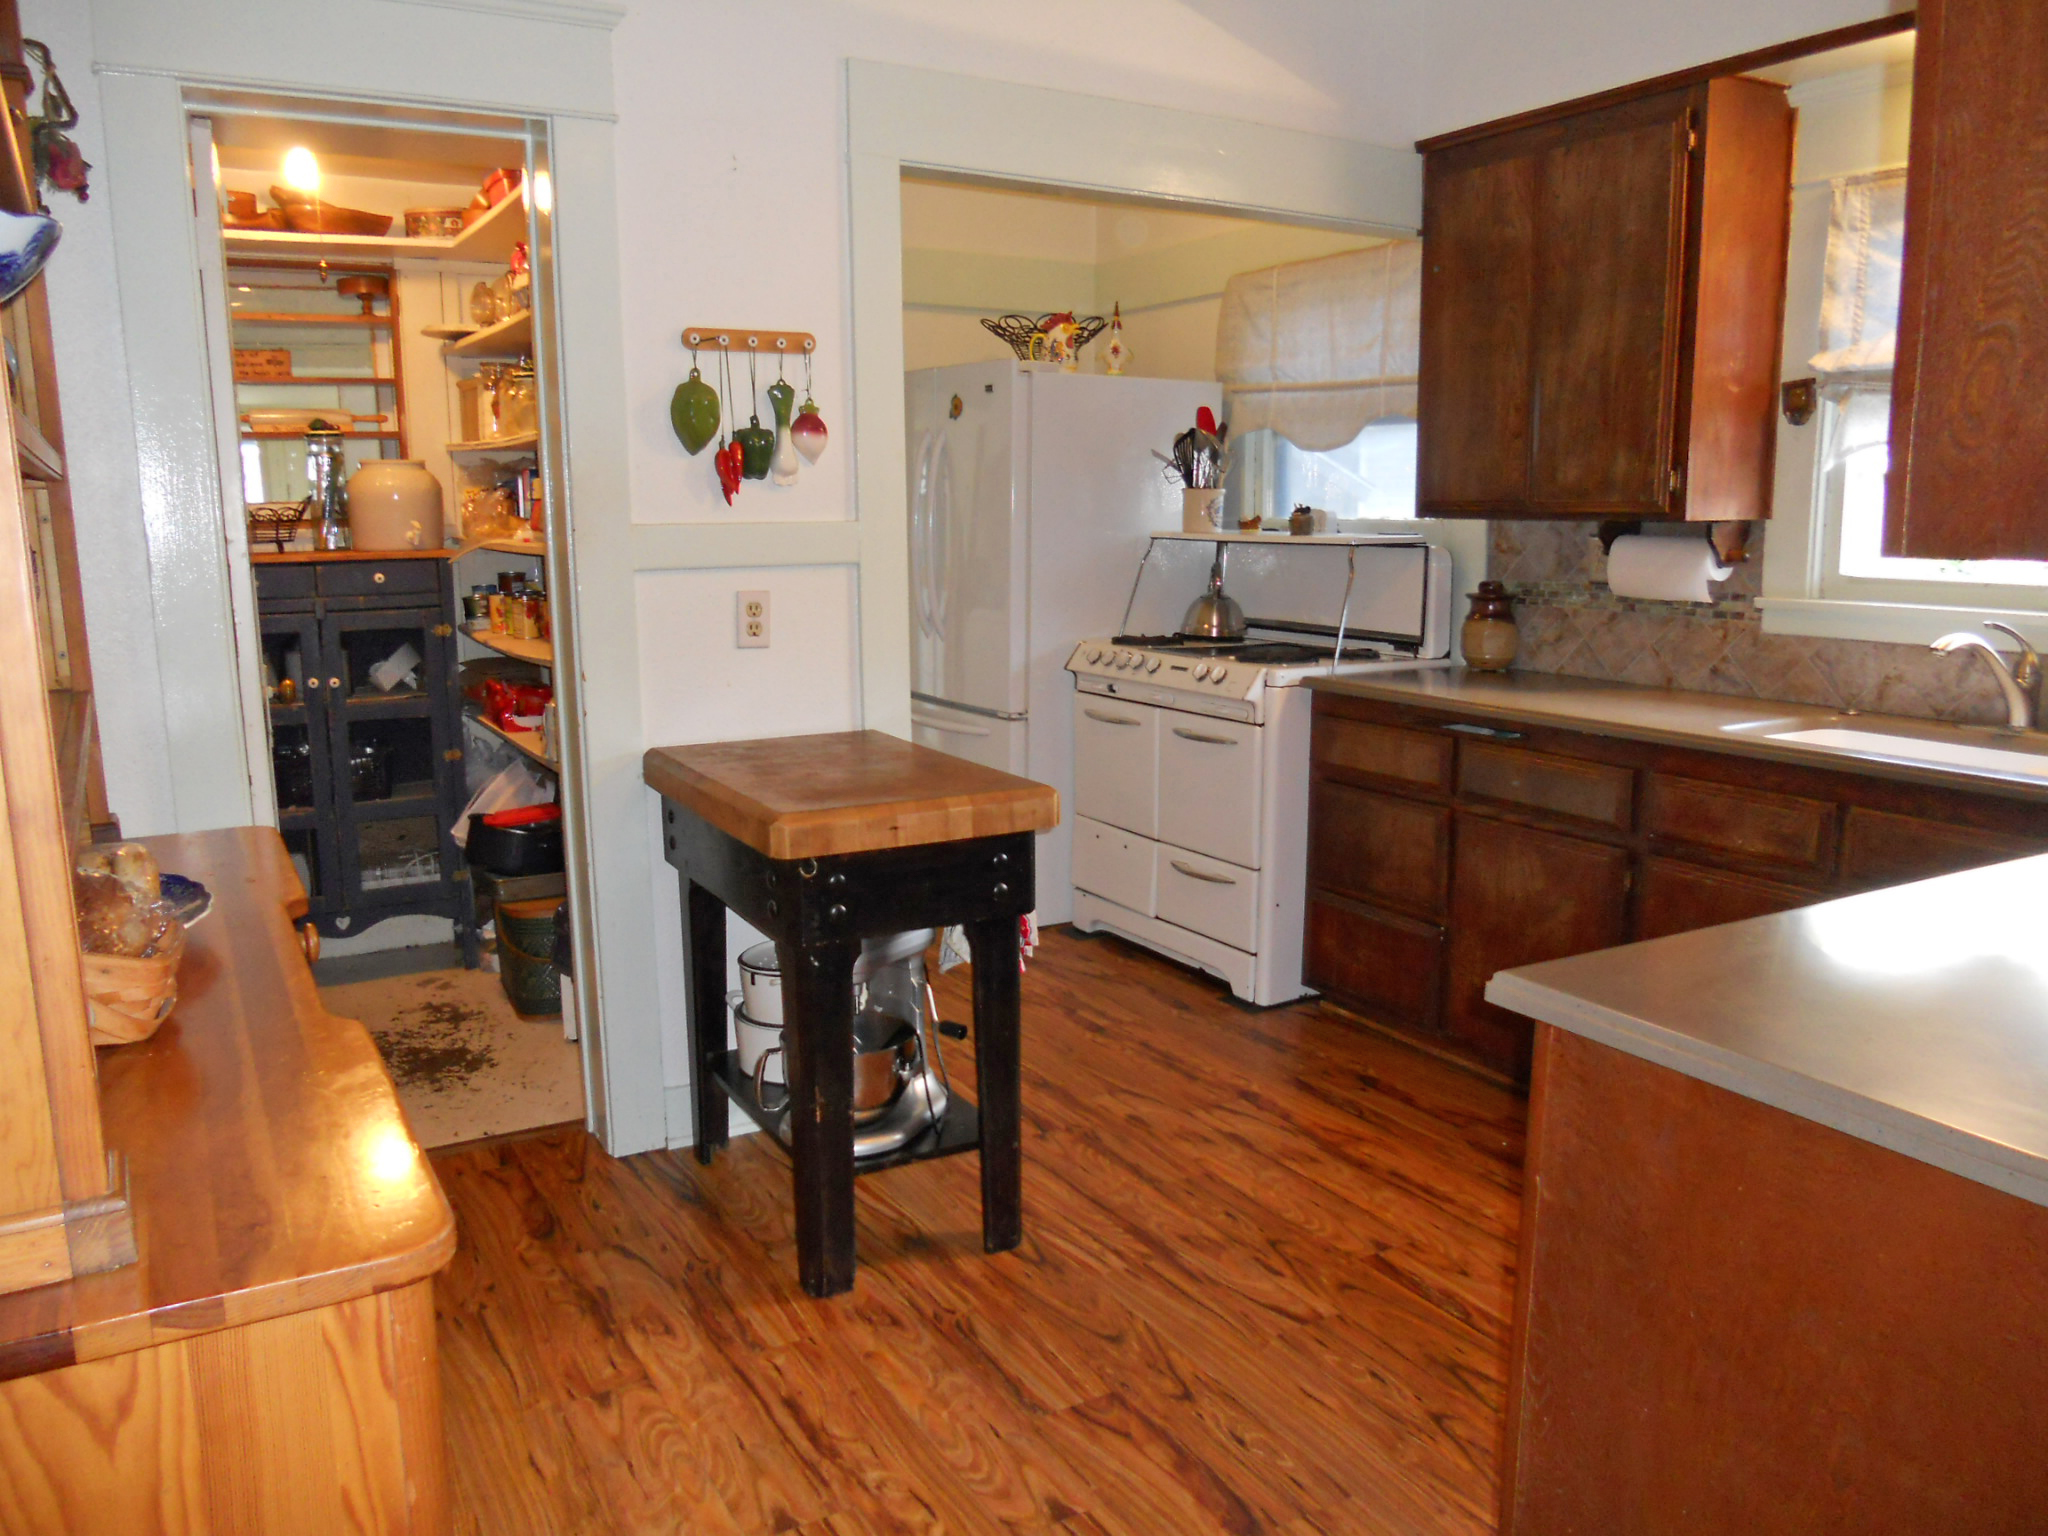 Alternate view of kitchen with walk-in pantry and antique gas stove!